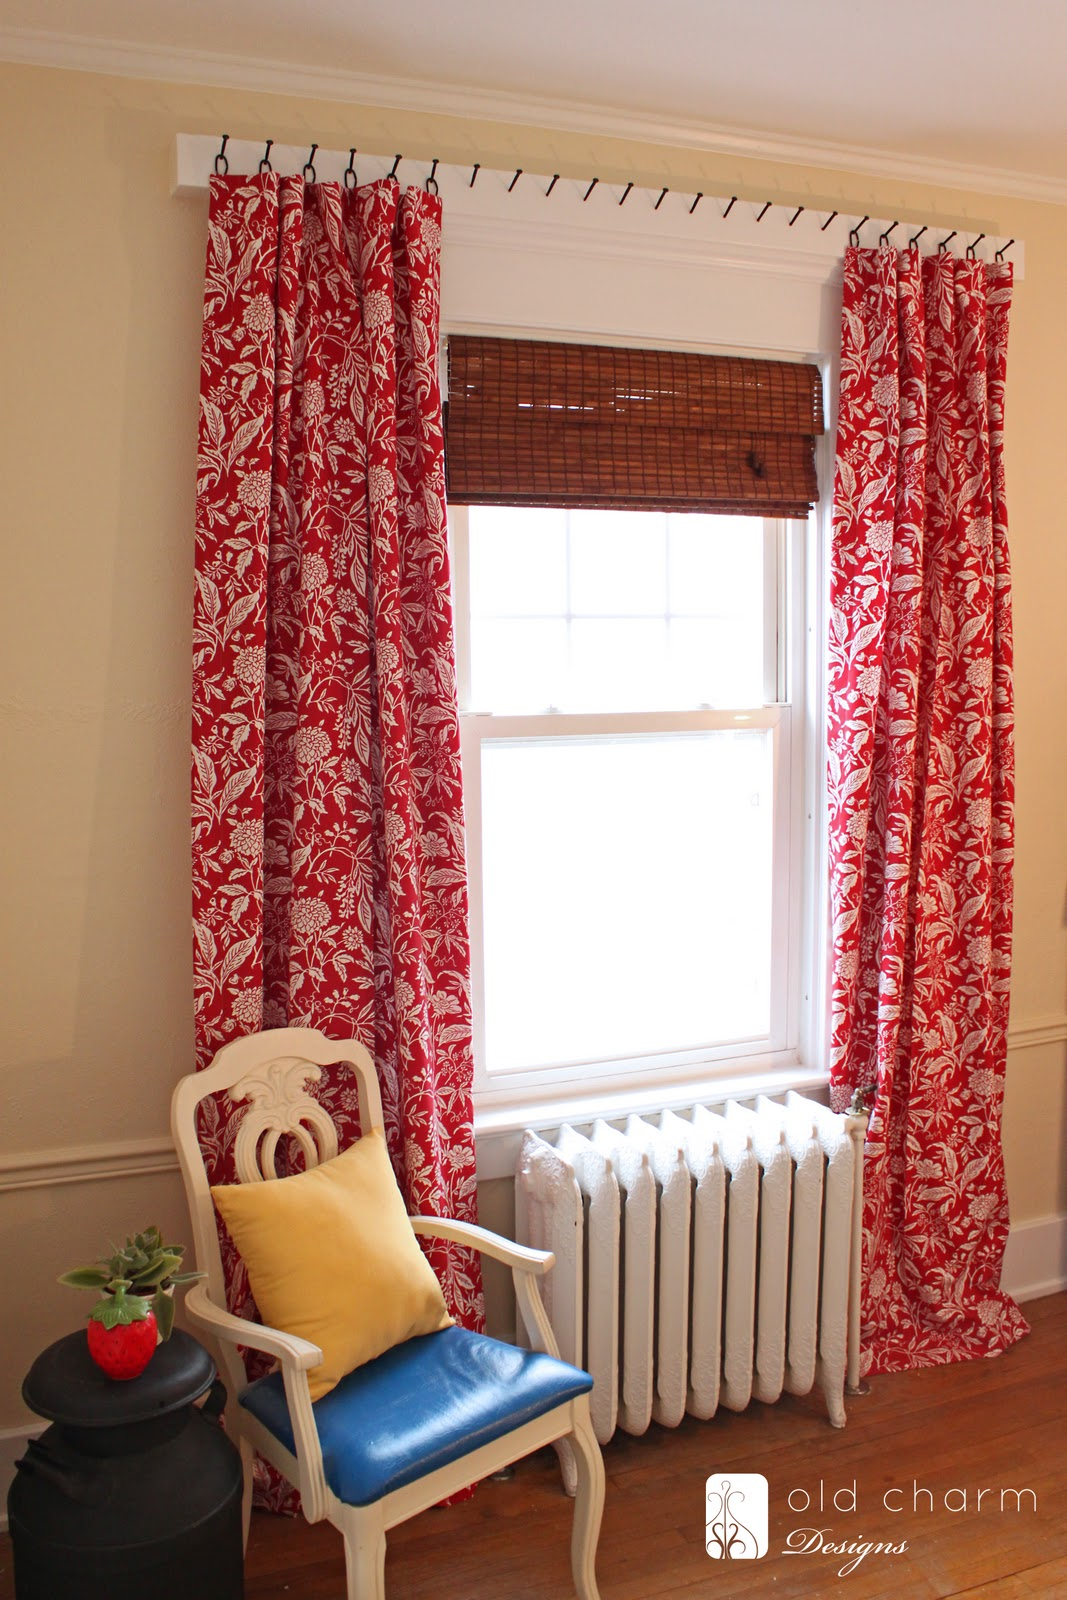 Curtains - The Inspired Room on Draping Curtains Ideas  id=41973